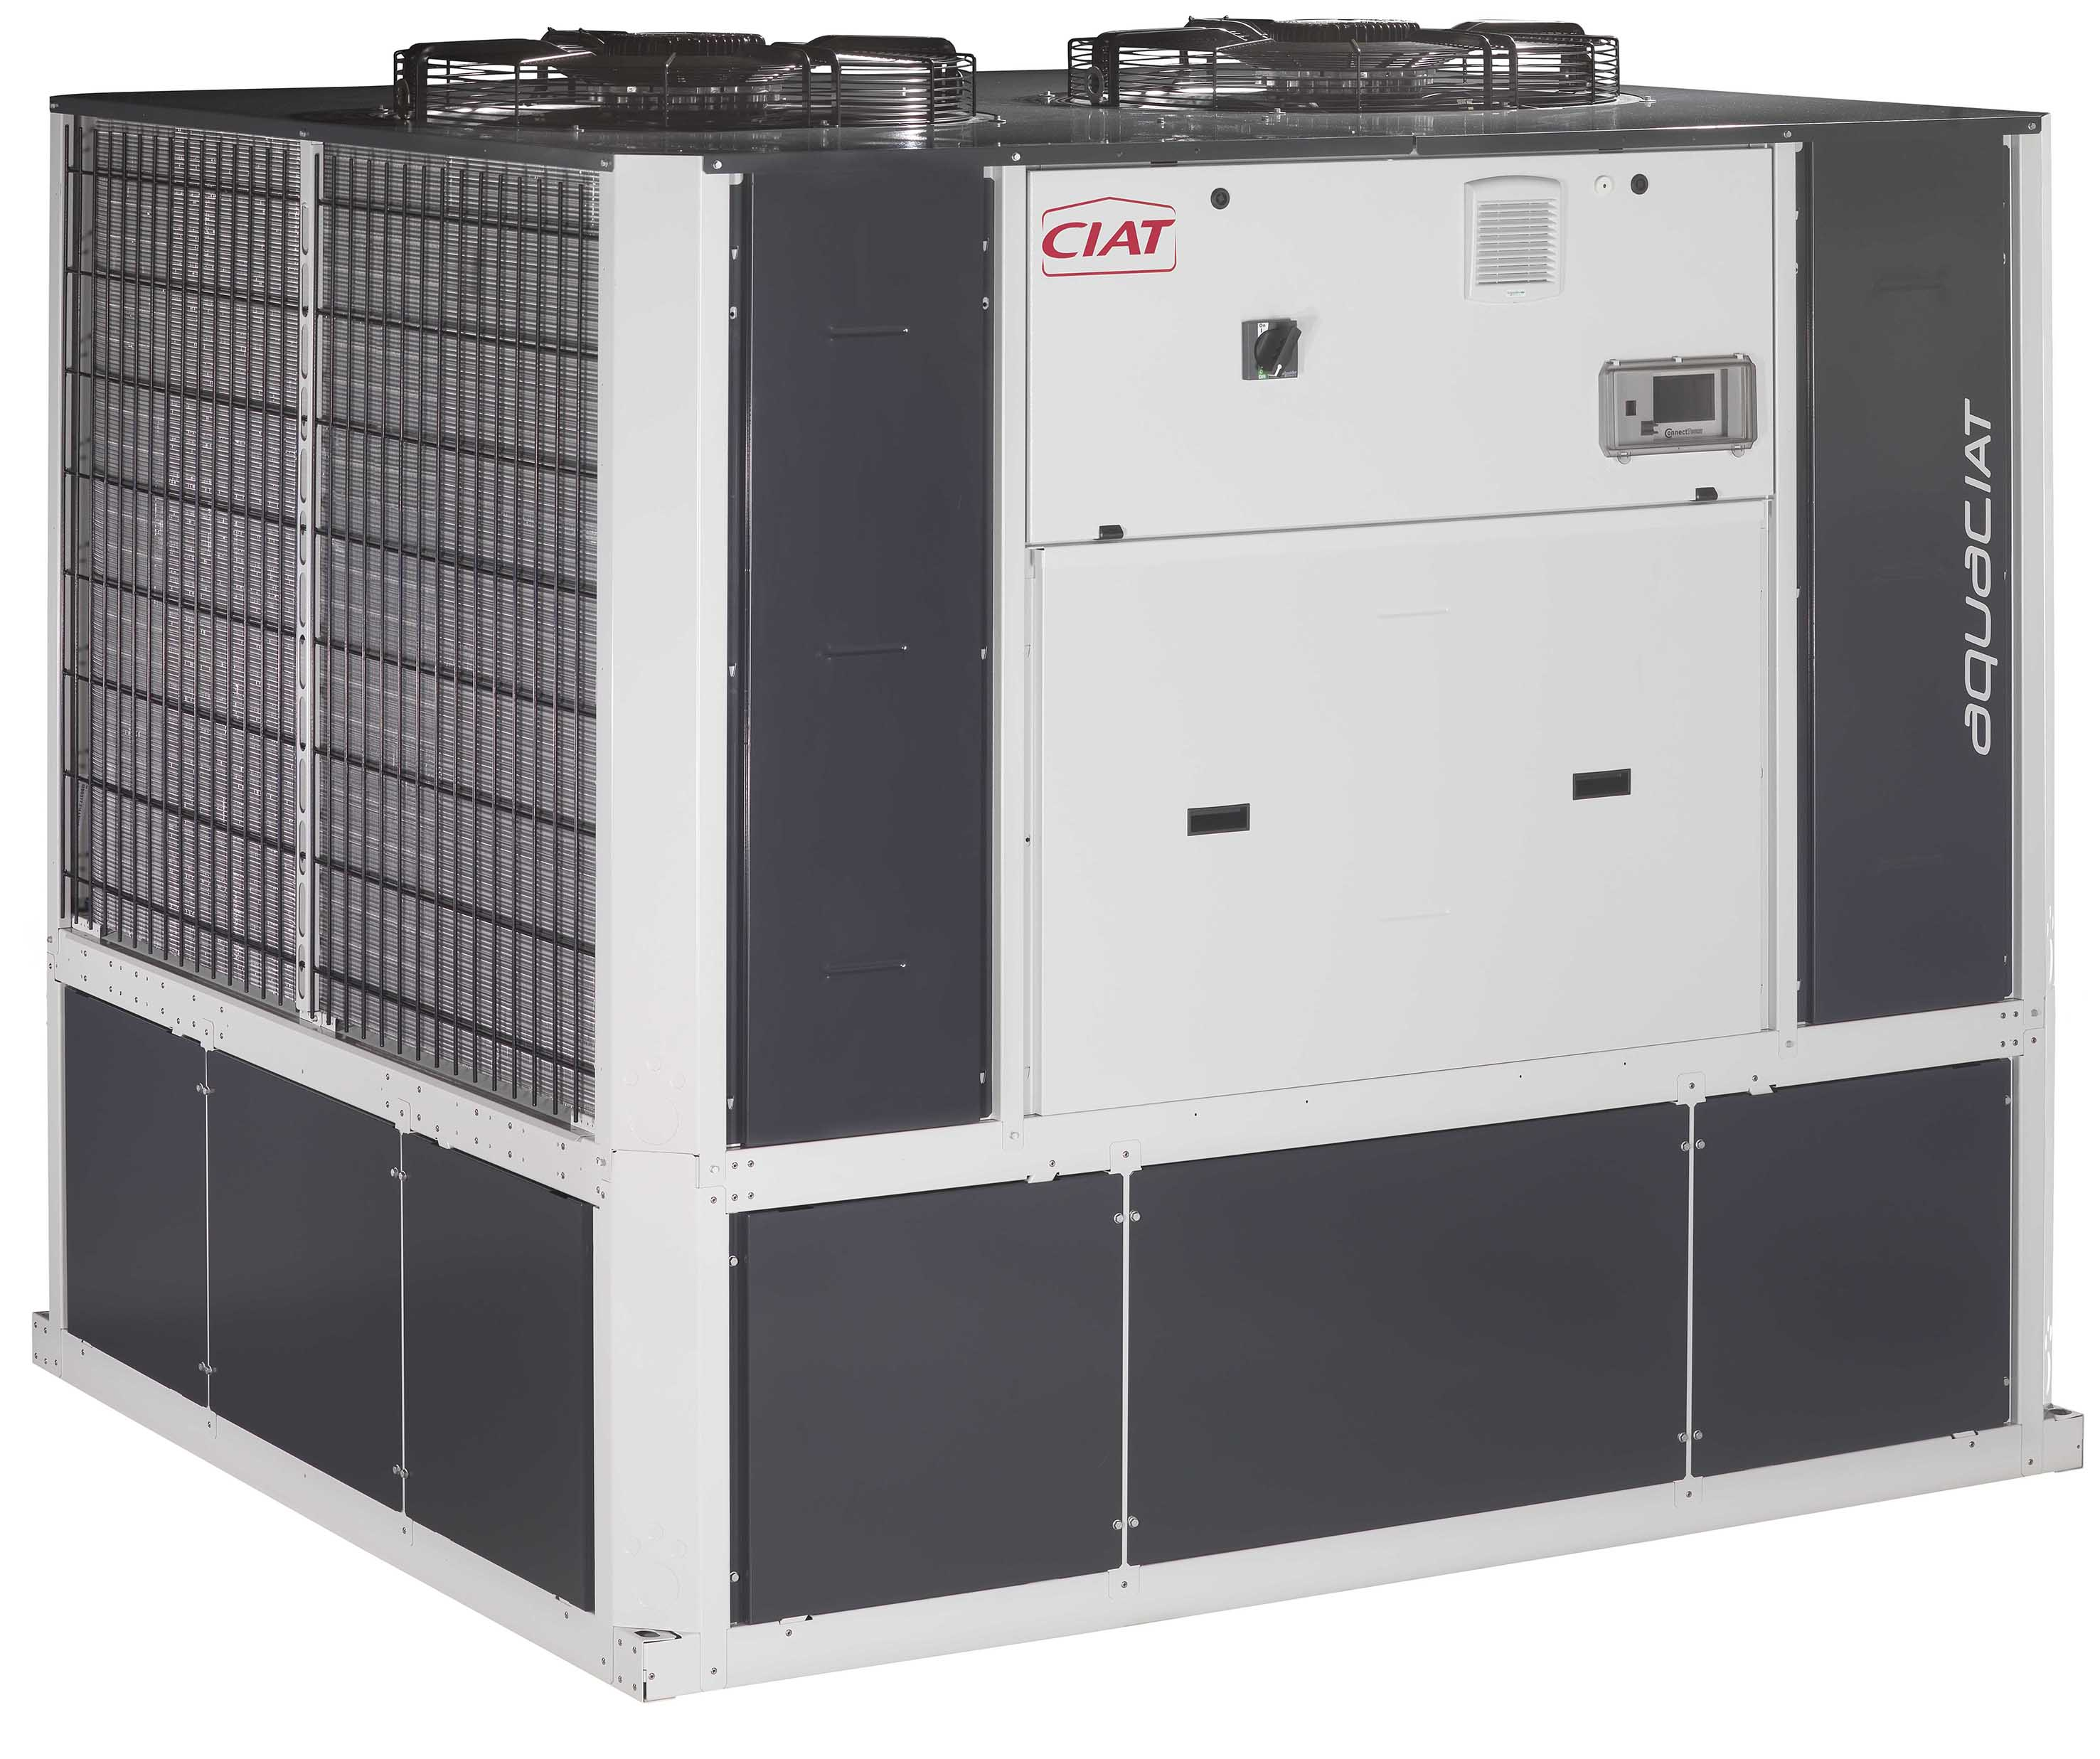 Aquaciat Ild 42 To 162 Kw Ciat Air Conditioning And